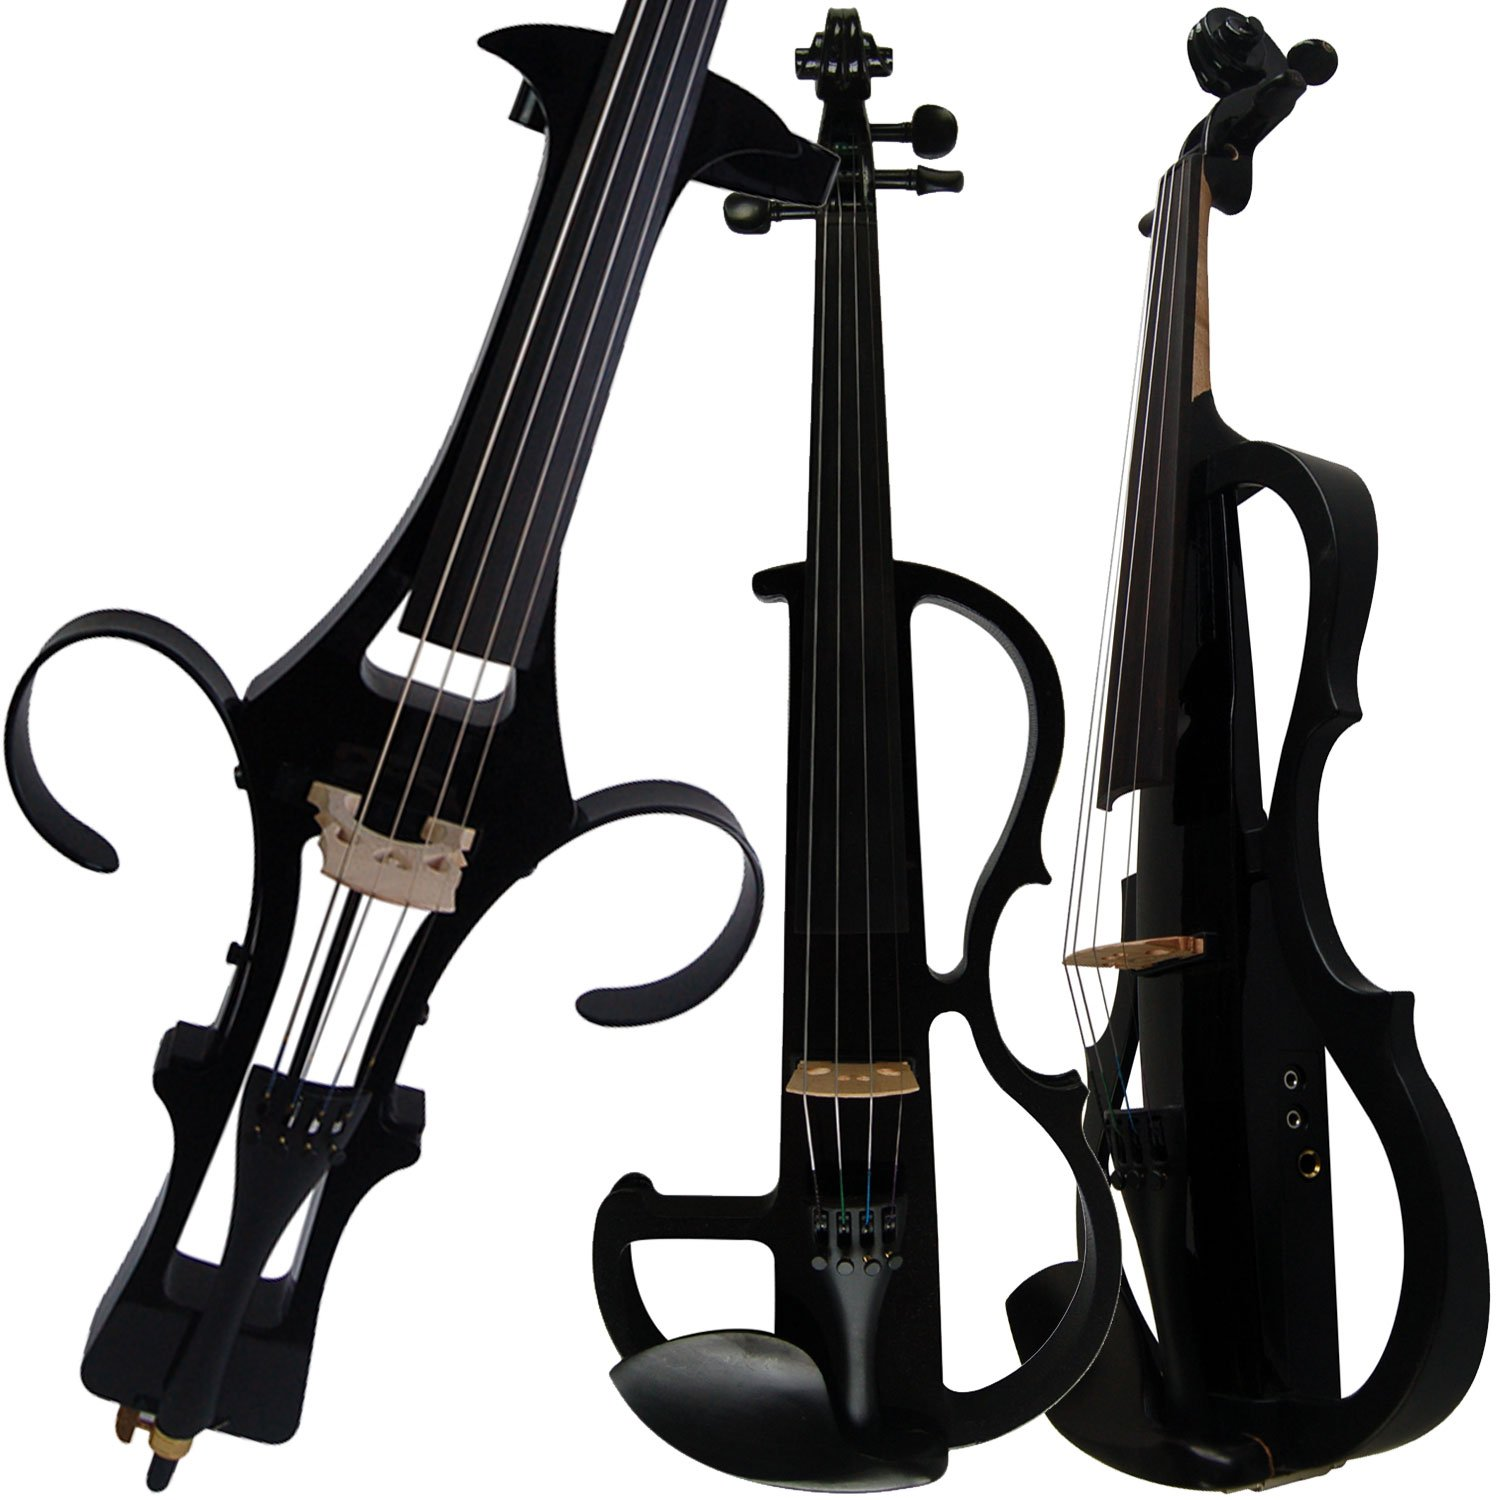 Aliyes Handmade Professional Solid Wood Electric Cello 4/4 Full Size Silent Electric Cello-1802